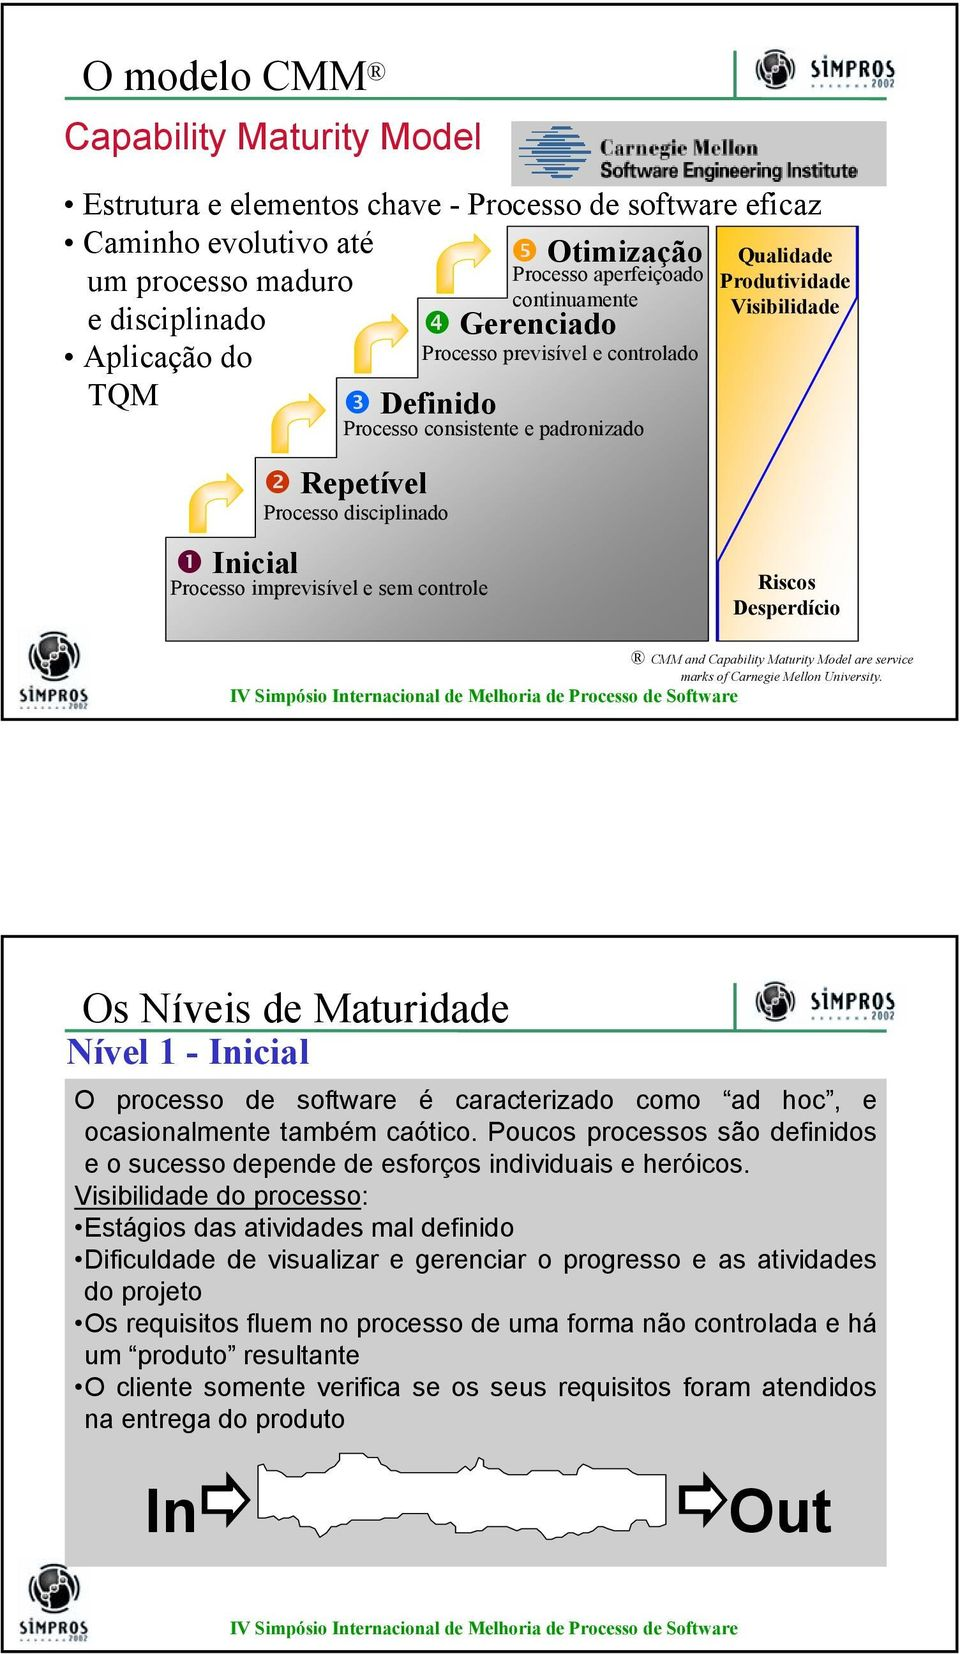 imprevisível e sem controle Riscos Desperdício CMM and Capability Maturity Model are service marks of Carnegie Mellon University.